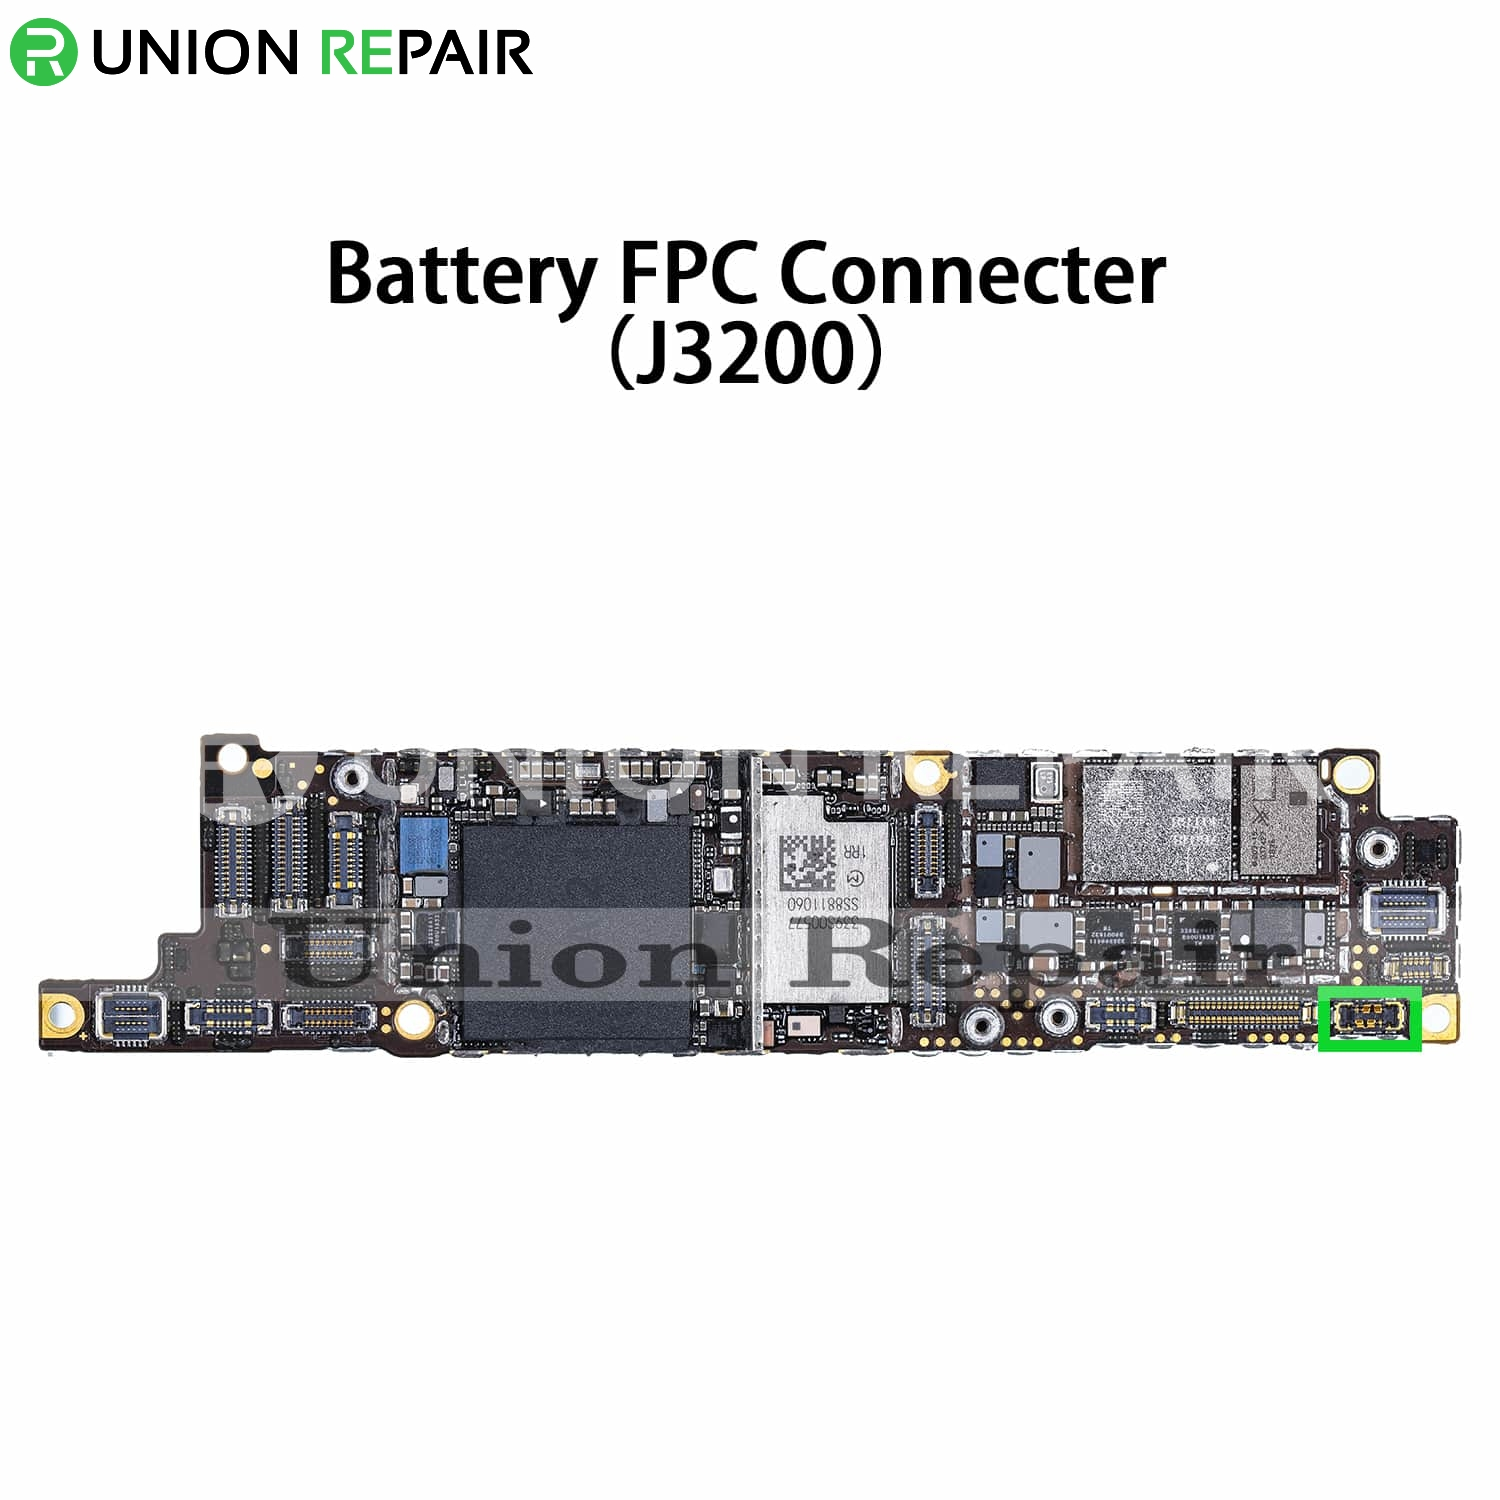 Replacement for iPhone XR Battery Connector Port Onboard